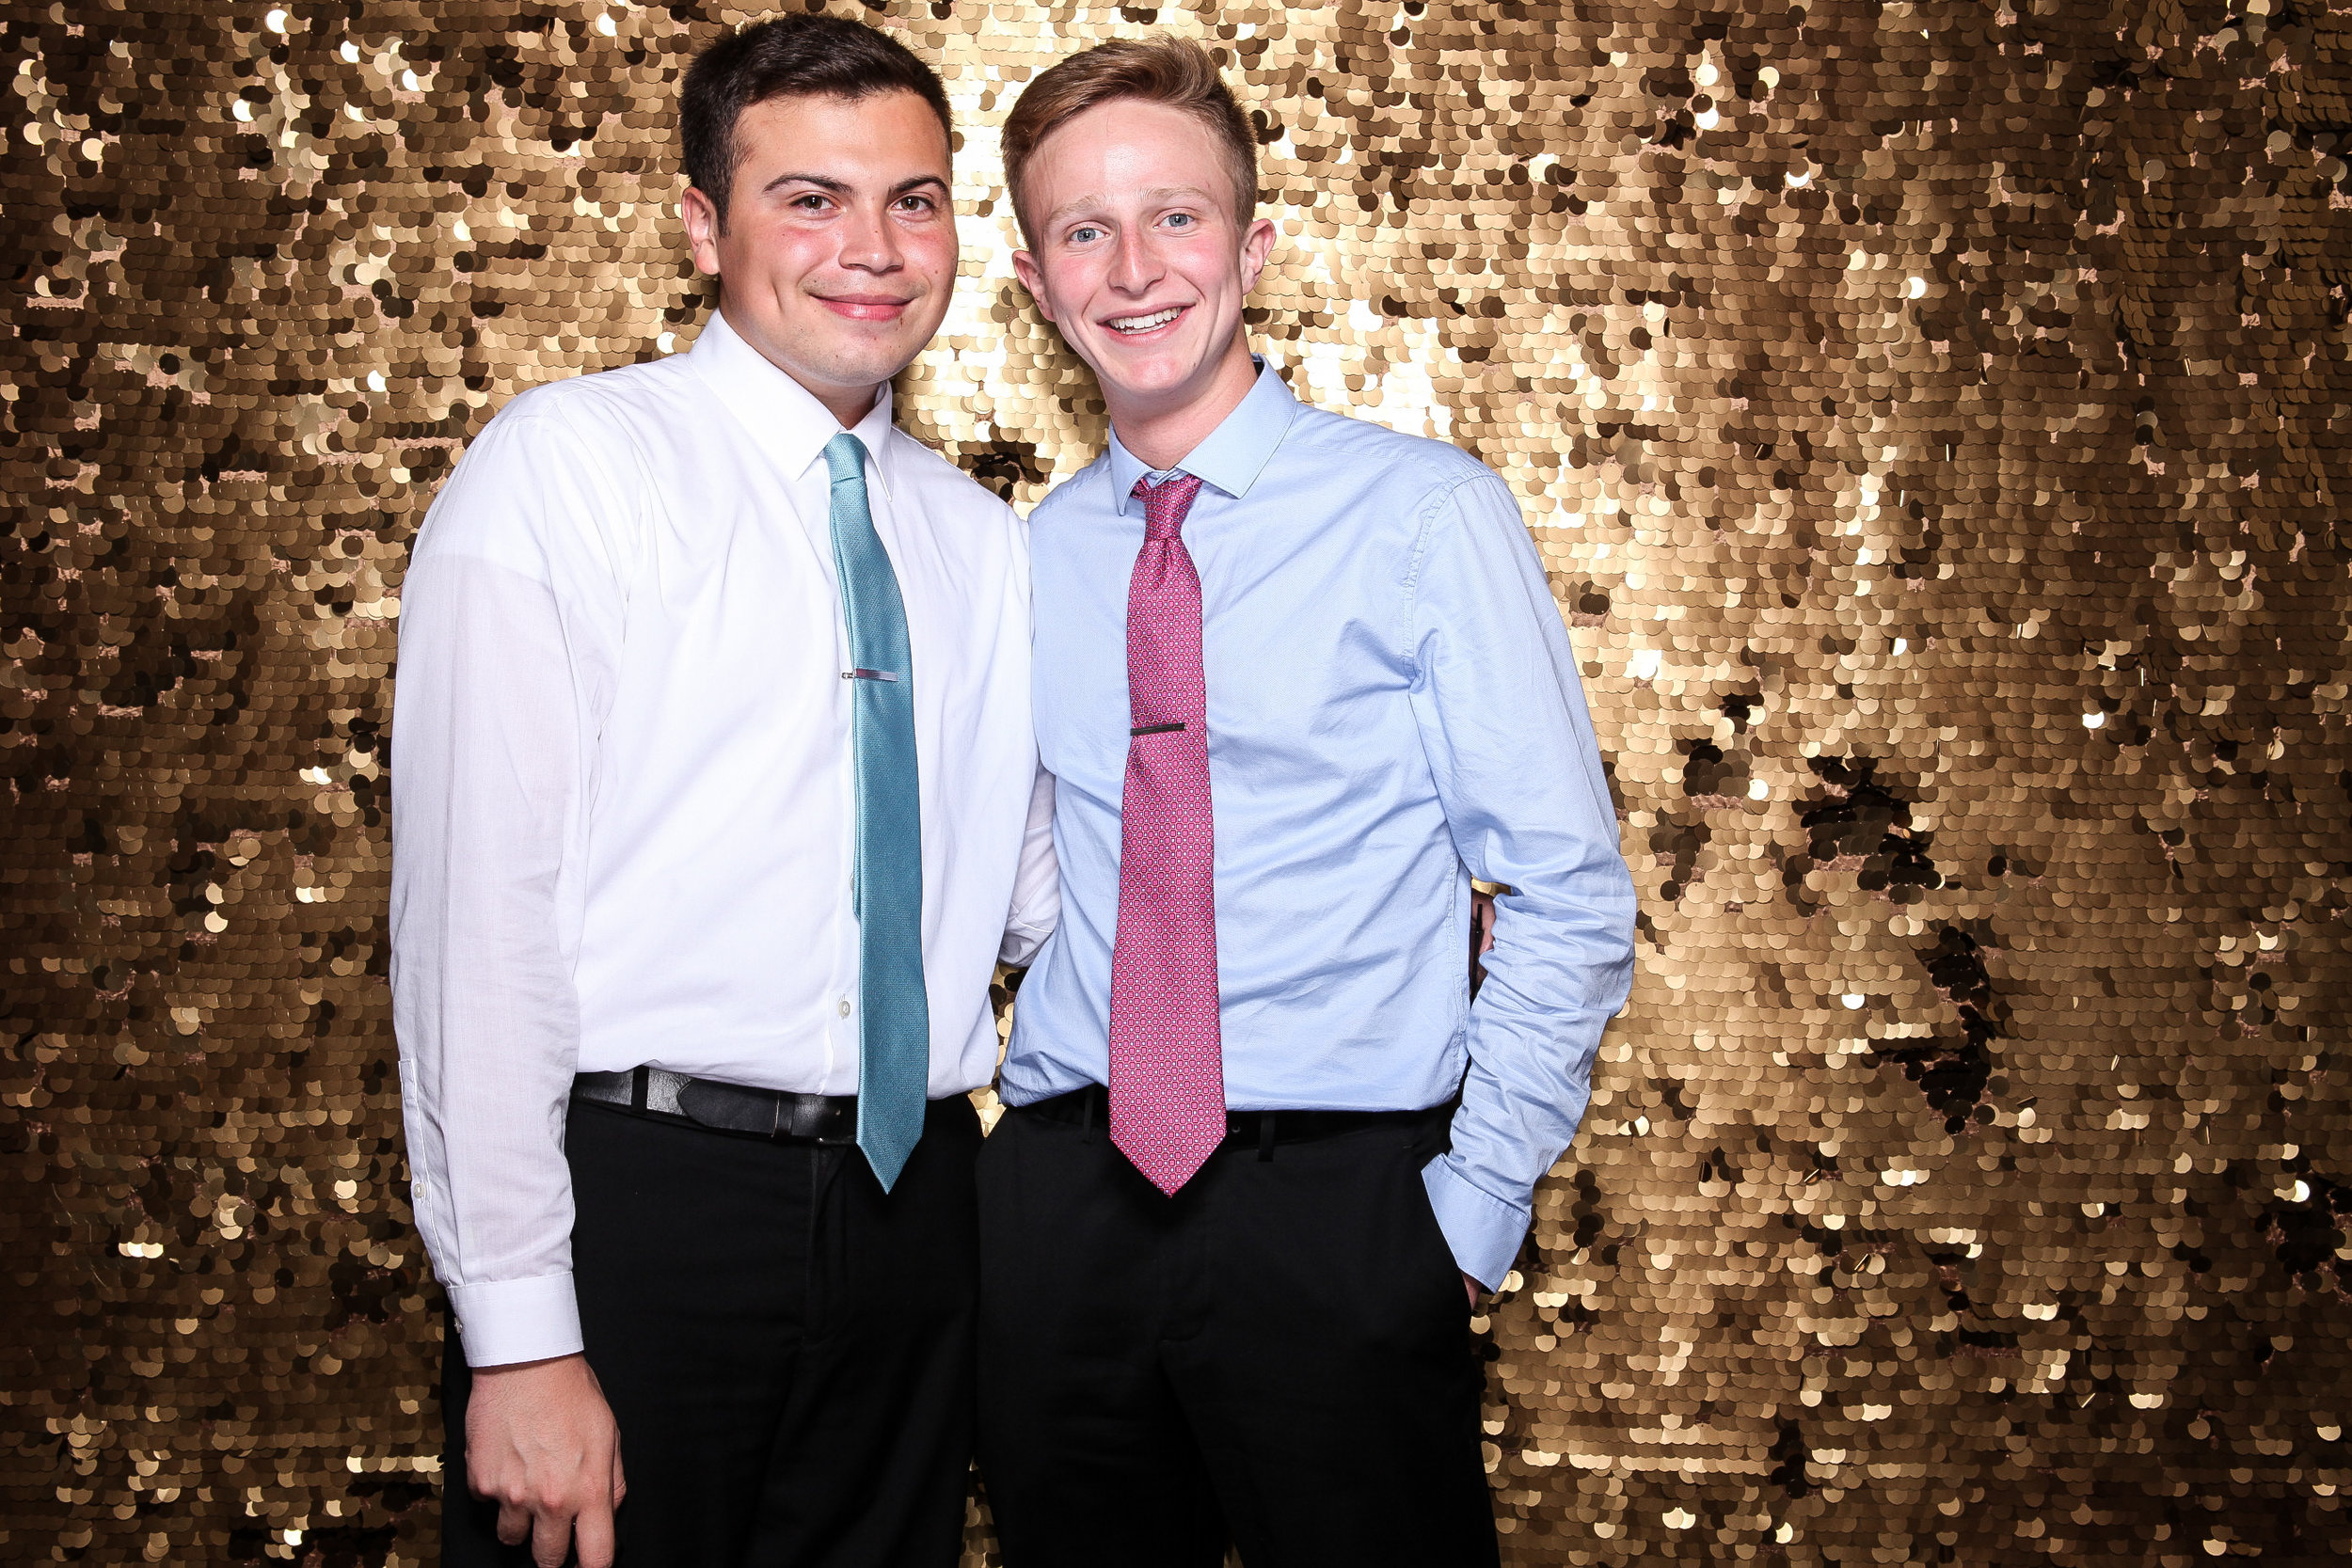 20190503_Adelphi_Senior_Formal-344.jpg